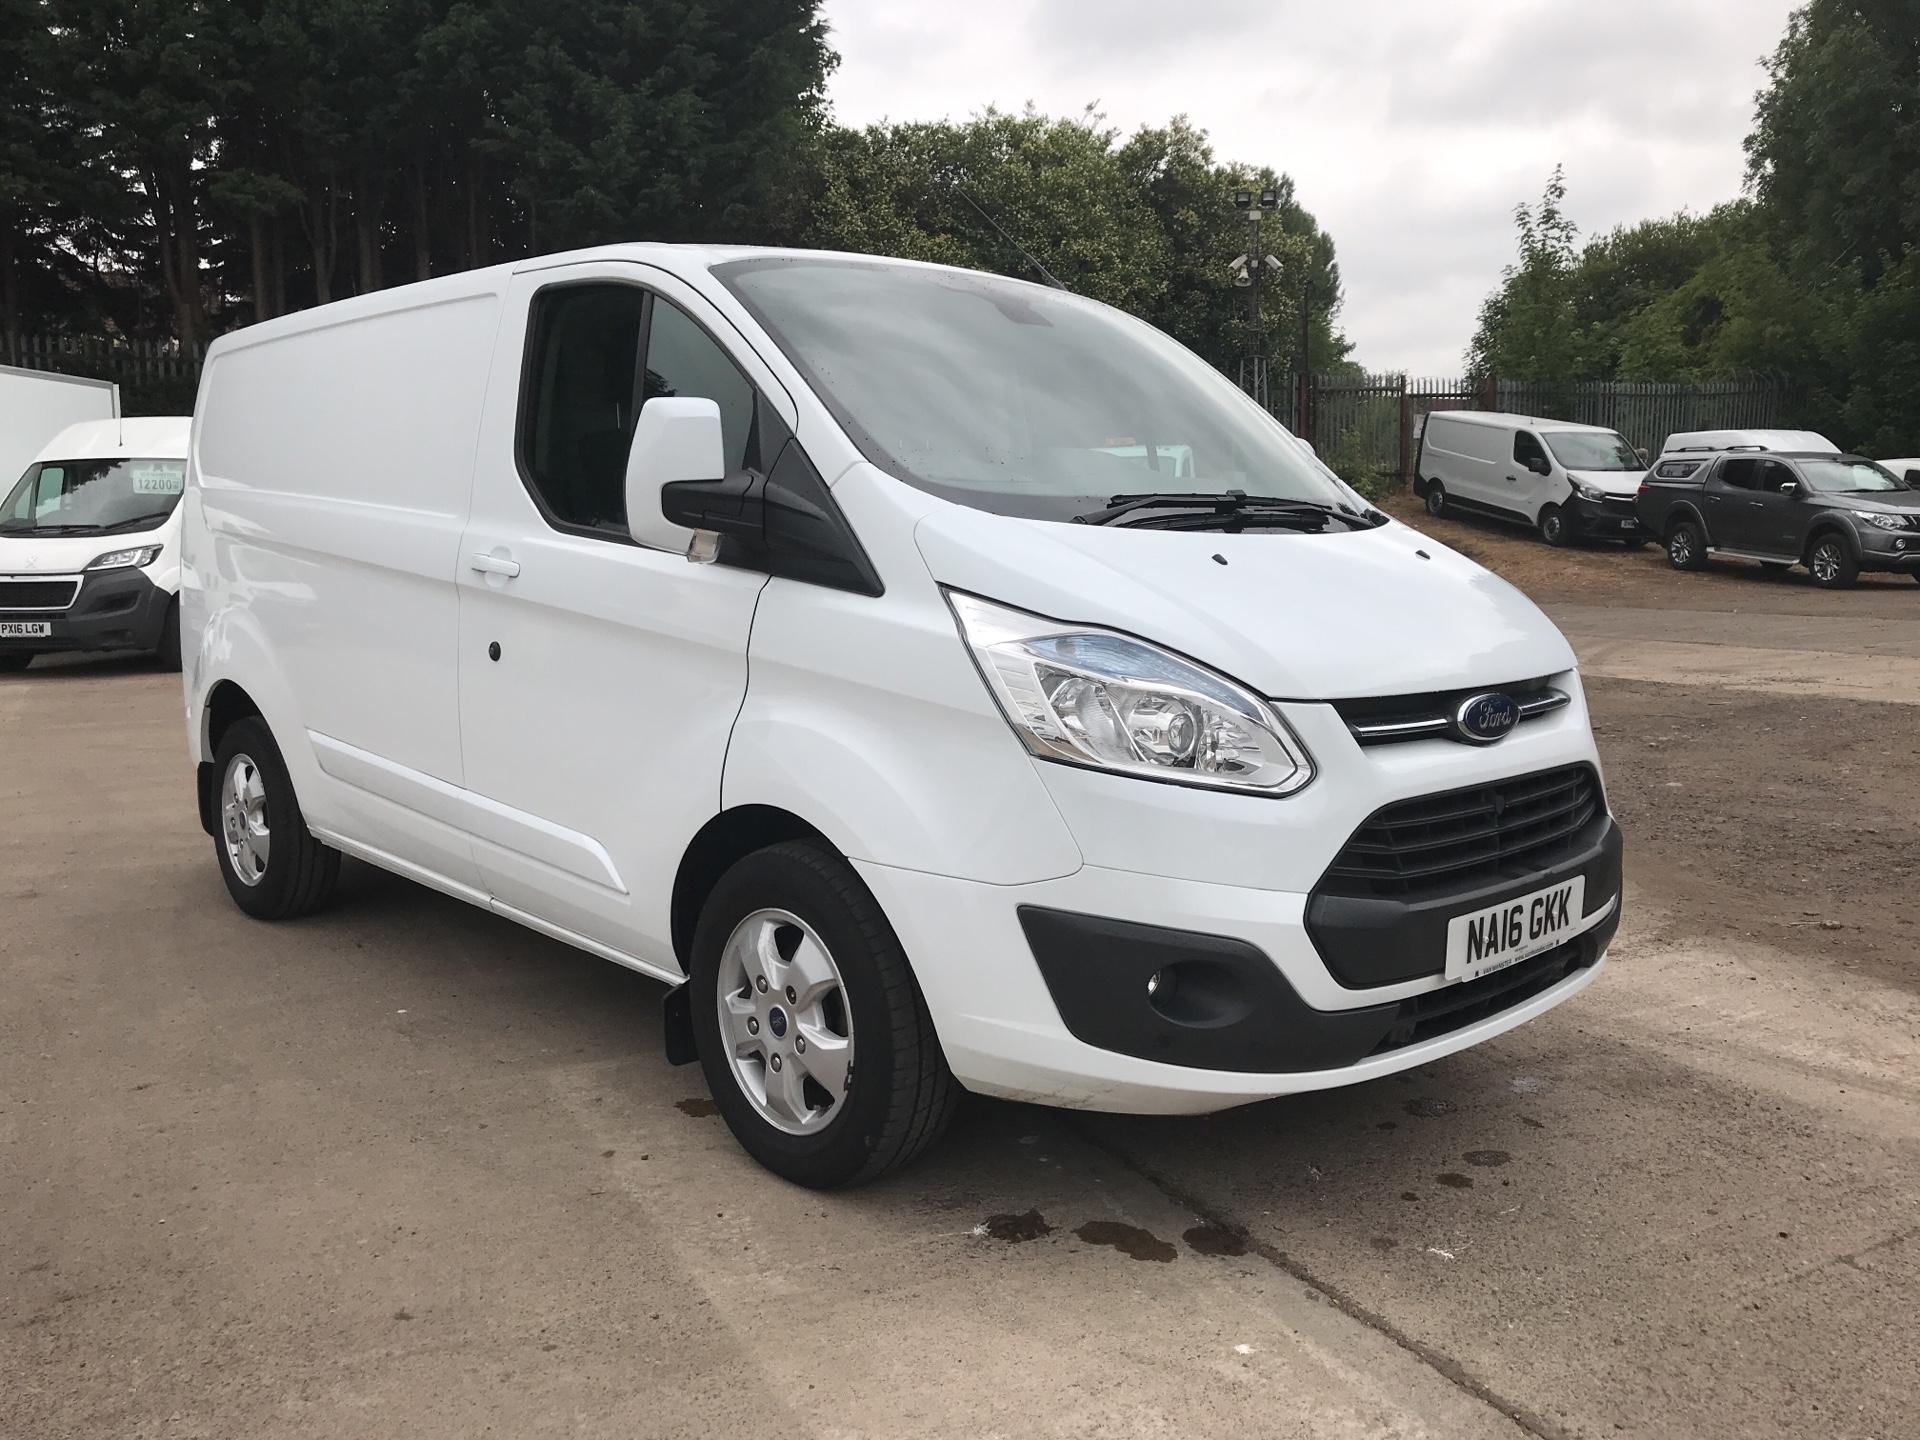 2016 Ford Transit Custom 270 L1 DIESEL FWD 2.2  TDCI 125PS LOW ROOF LIMITED VAN EURO 5 (NA16GKK) Image 1